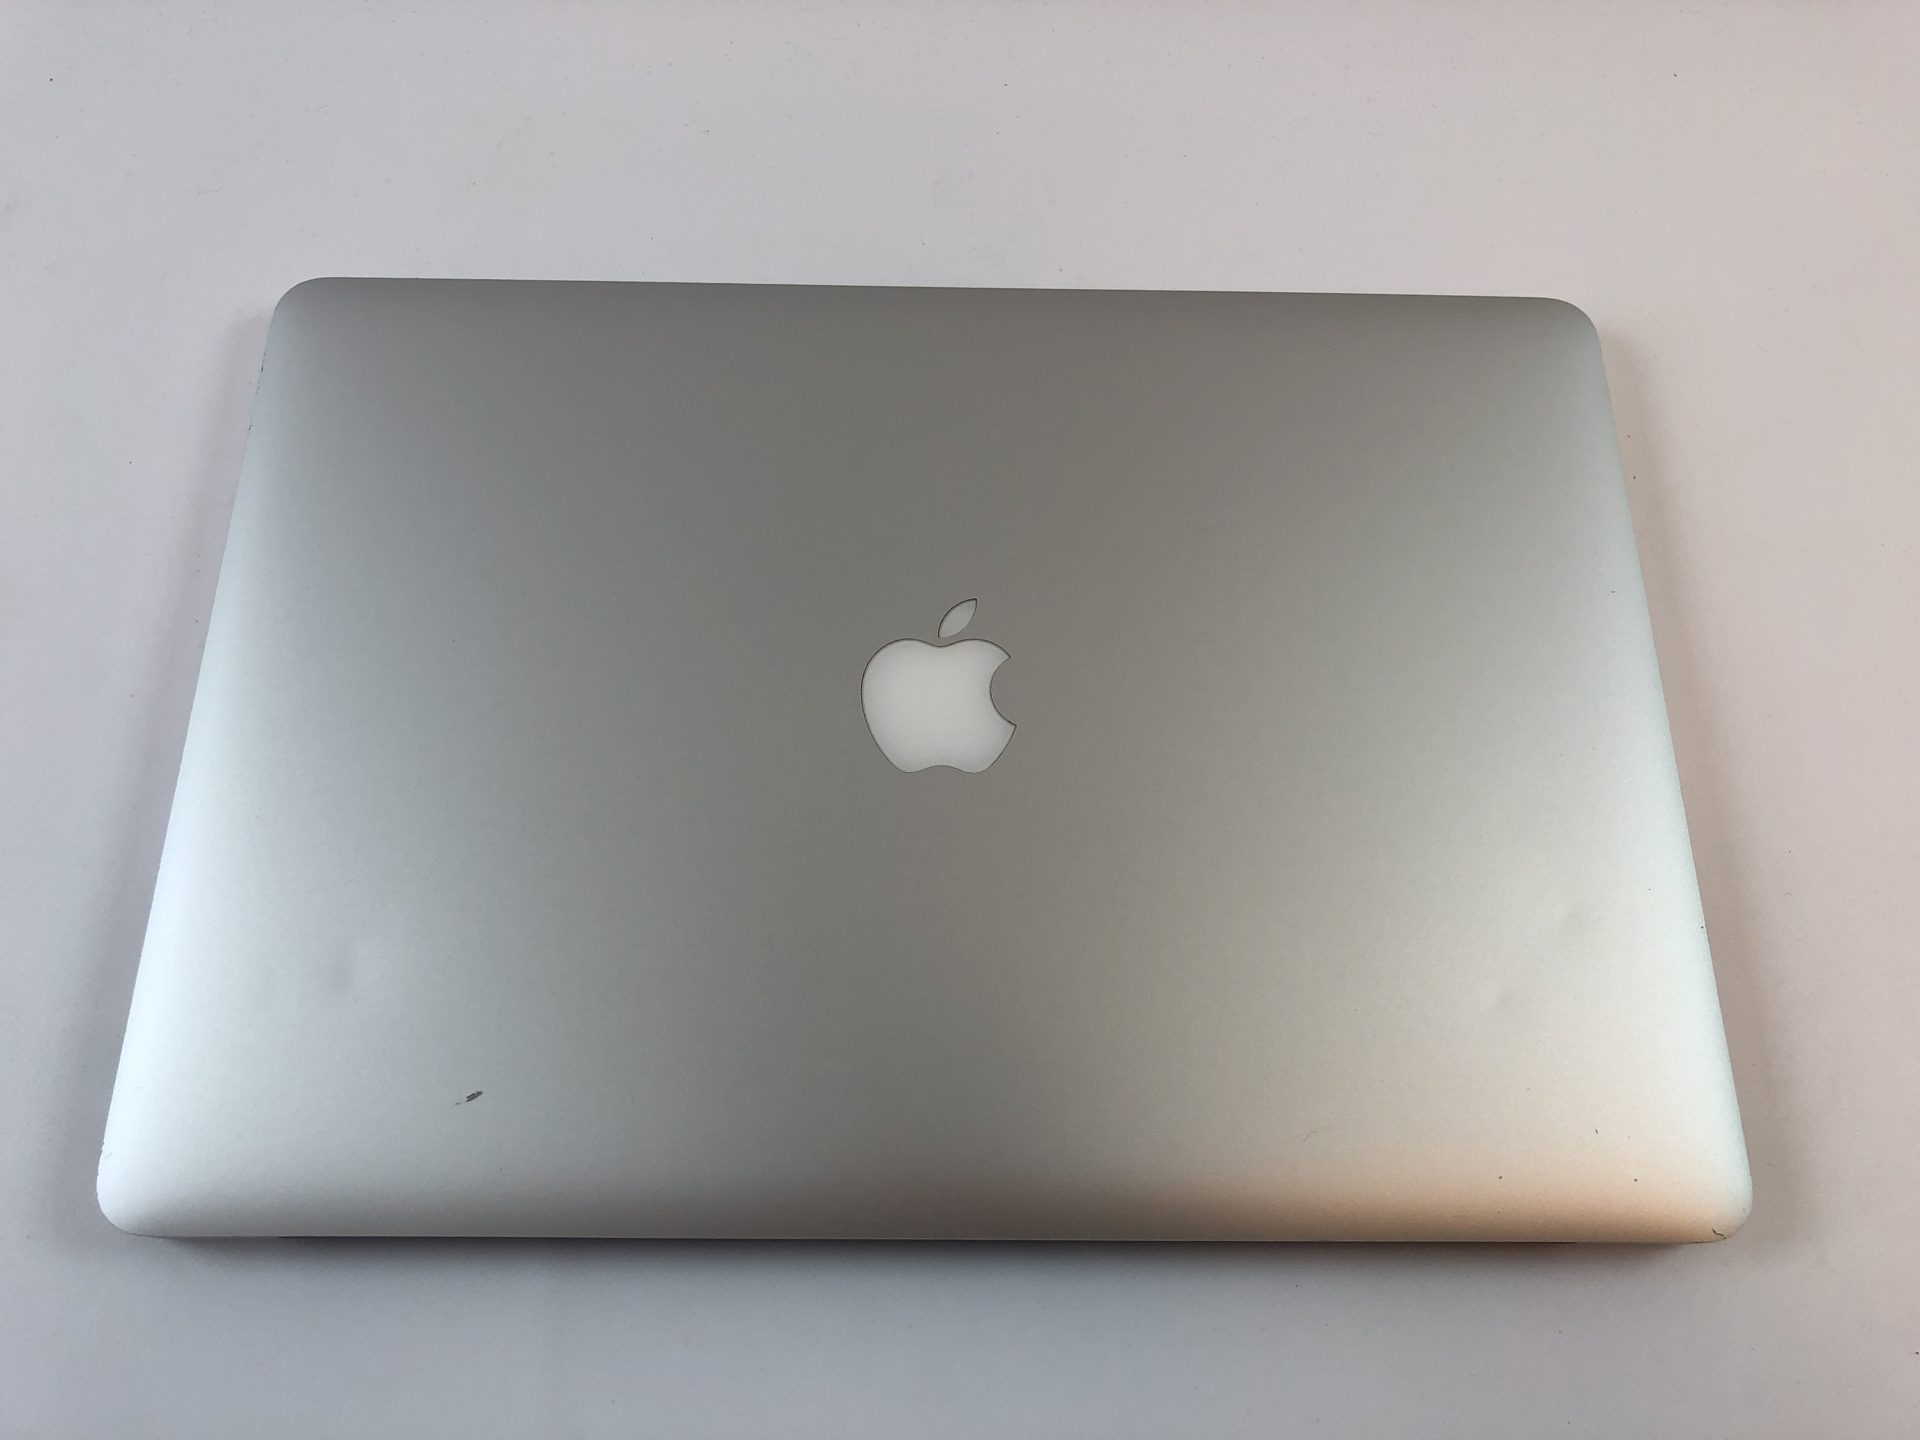 "MacBook Pro Retina 15"" Mid 2015 (Intel Quad-Core i7 2.5 GHz 16 GB RAM 512 GB SSD), Intel Quad-Core i7 2.5 GHz, 16 GB RAM, 512 GB SSD, Kuva 2"